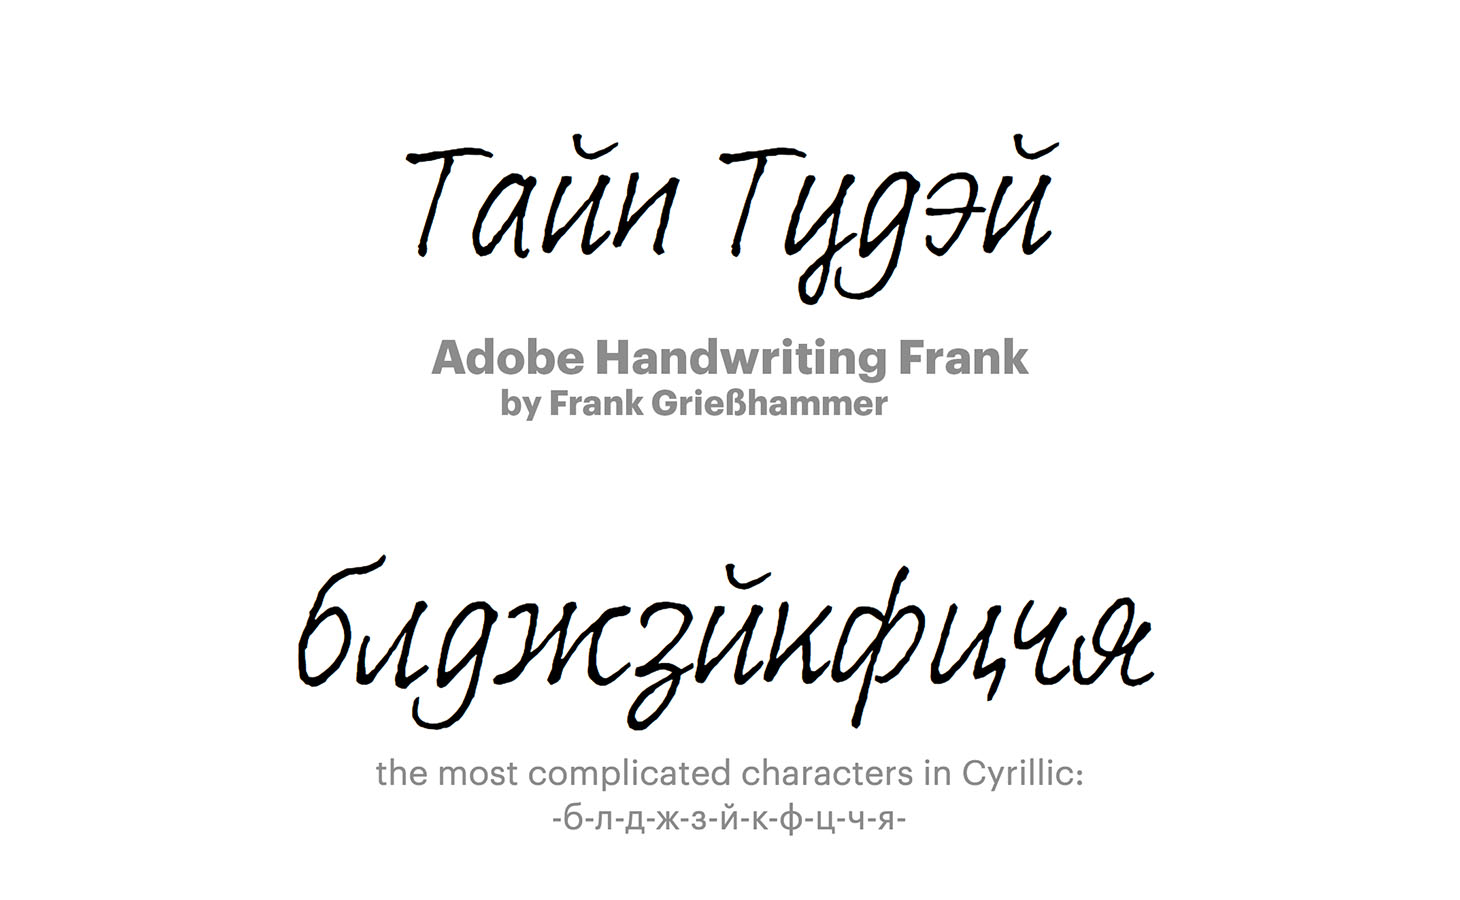 Adobe-Handwriting-Frank